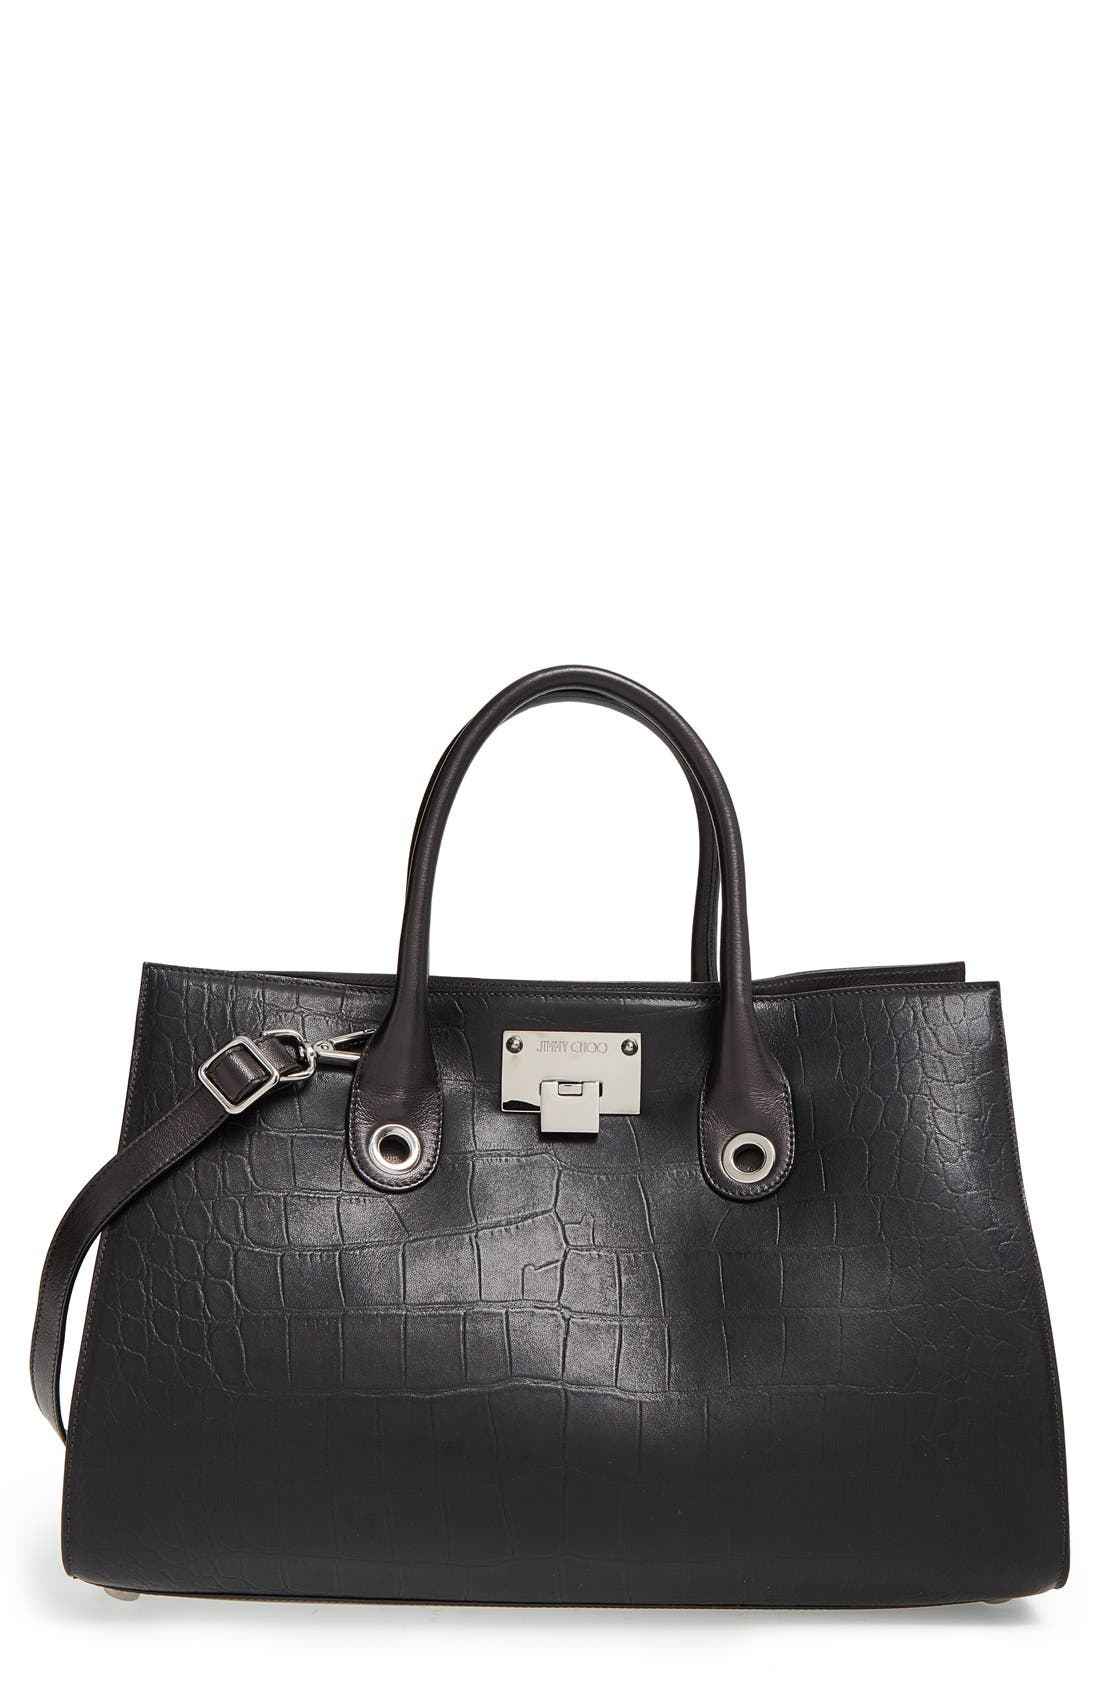 'Riley' Leather Tote,                             Main thumbnail 1, color,                             Black